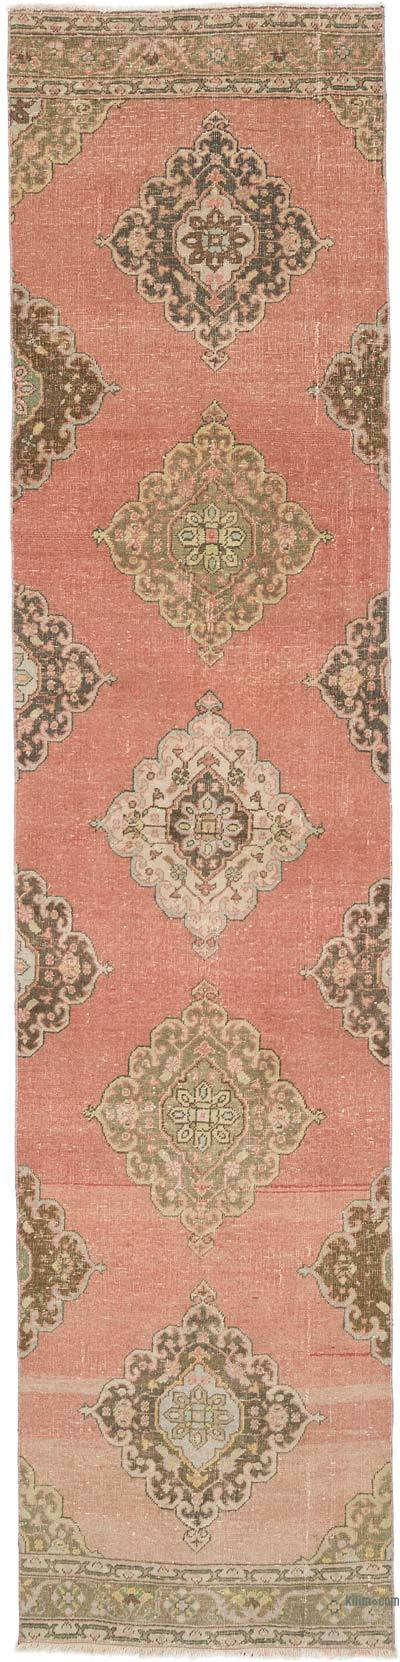 """Vintage Turkish Hand-Knotted Runner - 2' 10"""" x 12' 3"""" (34 in. x 147 in.)"""